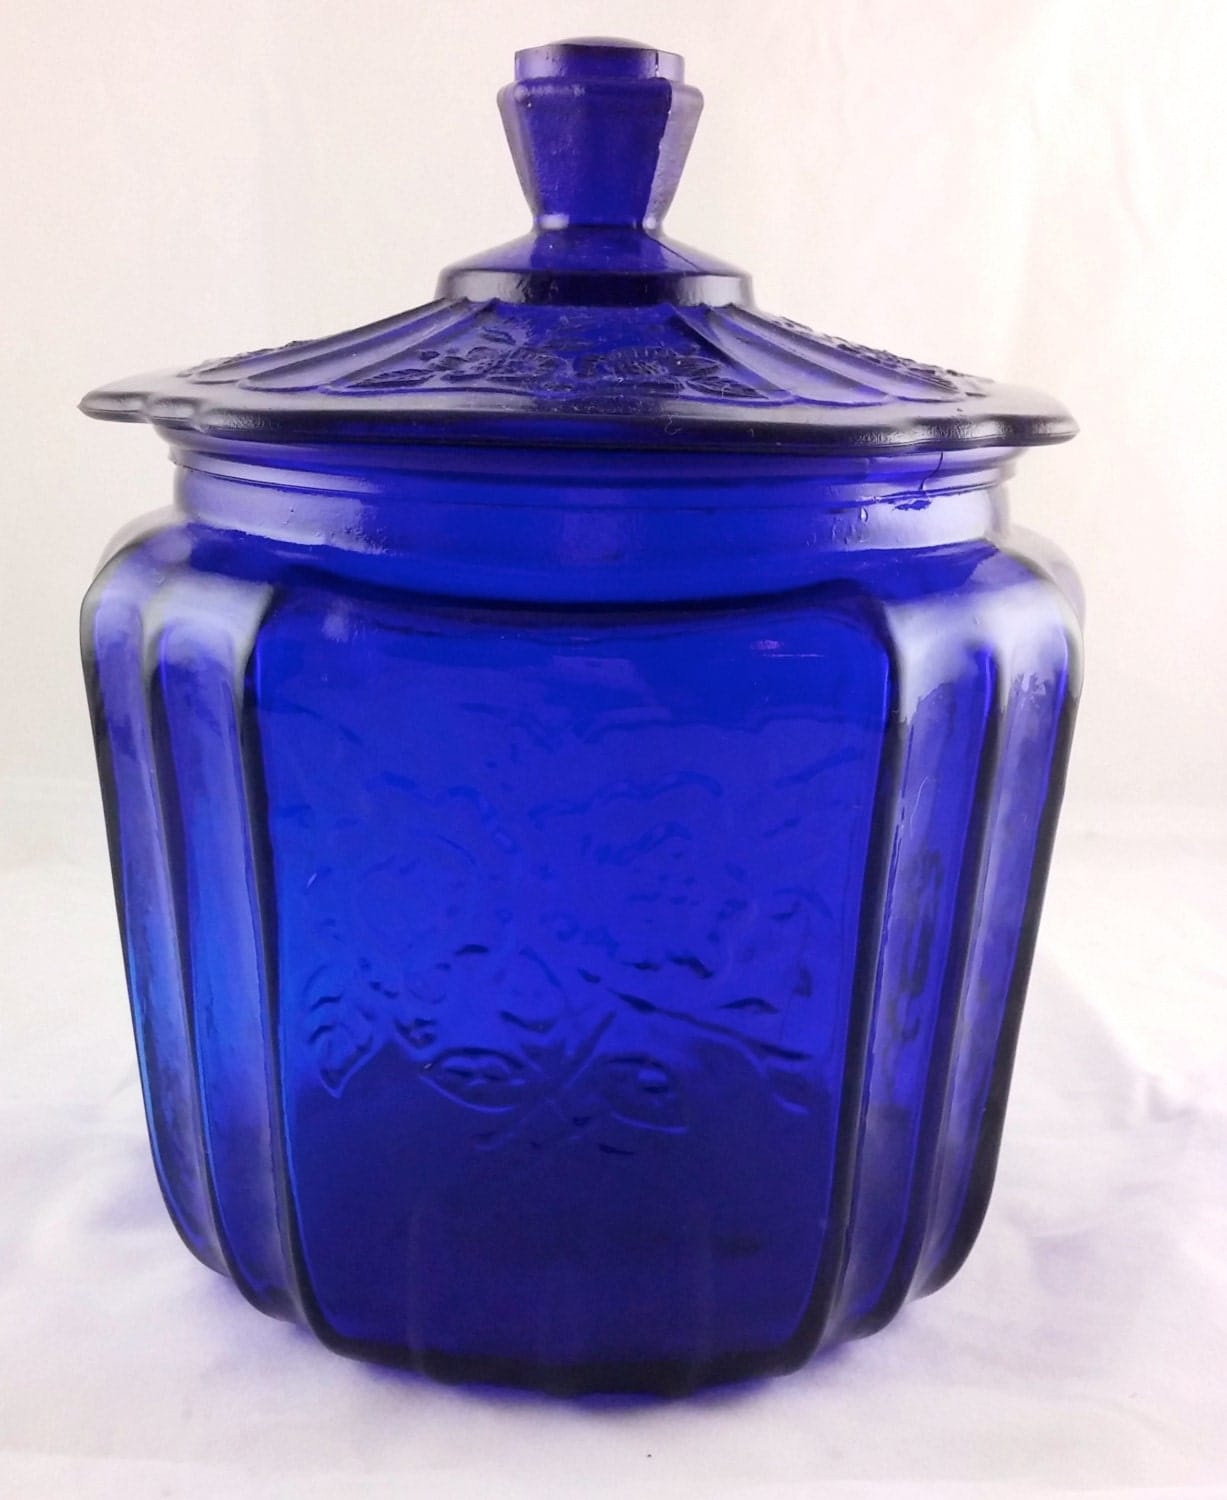 Vibrant vintage blue glass lidded canister kitchen storage - Blue glass kitchen canisters ...